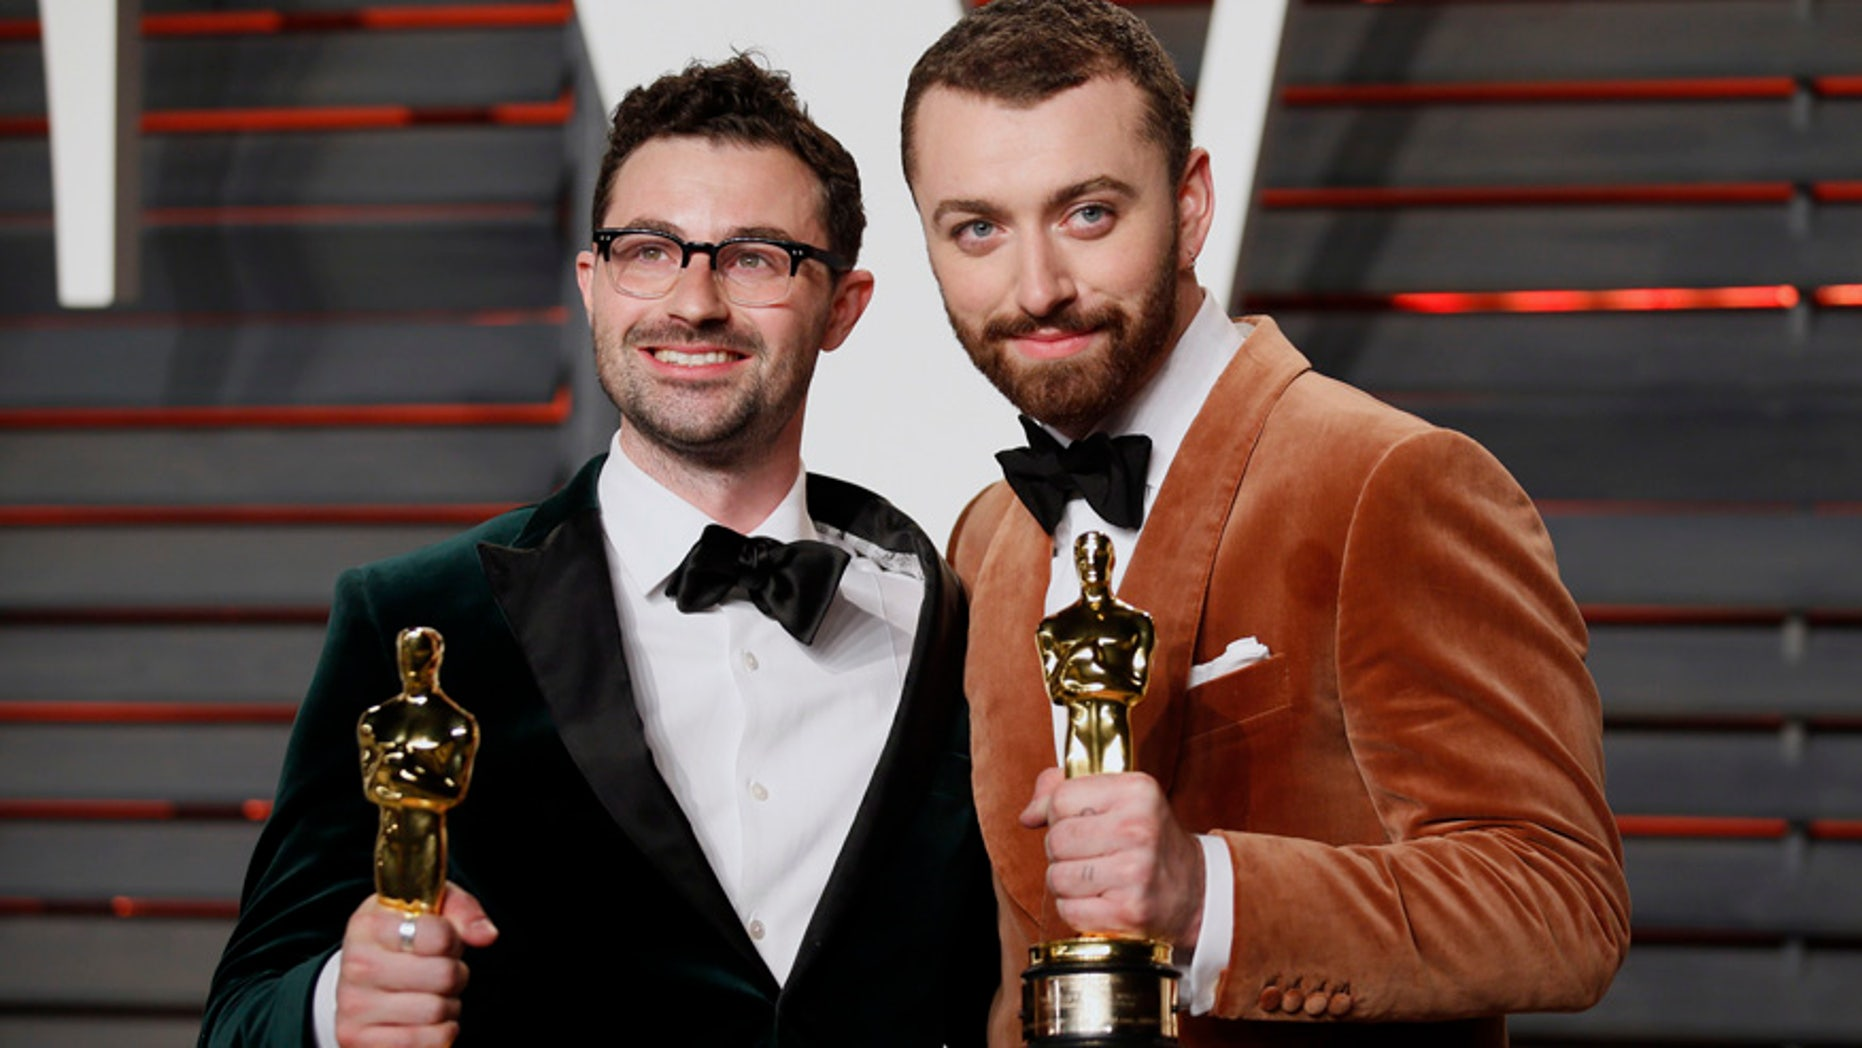 "British musicians Jimmy Napes (L) and Sam Smith with their Oscars for Best Original Song for ""Writing's on the Wall"" from the film ""Spectre"", arrive at the Vanity Fair Oscar Party in Beverly Hills, California February 28, 2016.  REUTERS/Danny Moloshok - RTS8IFI"